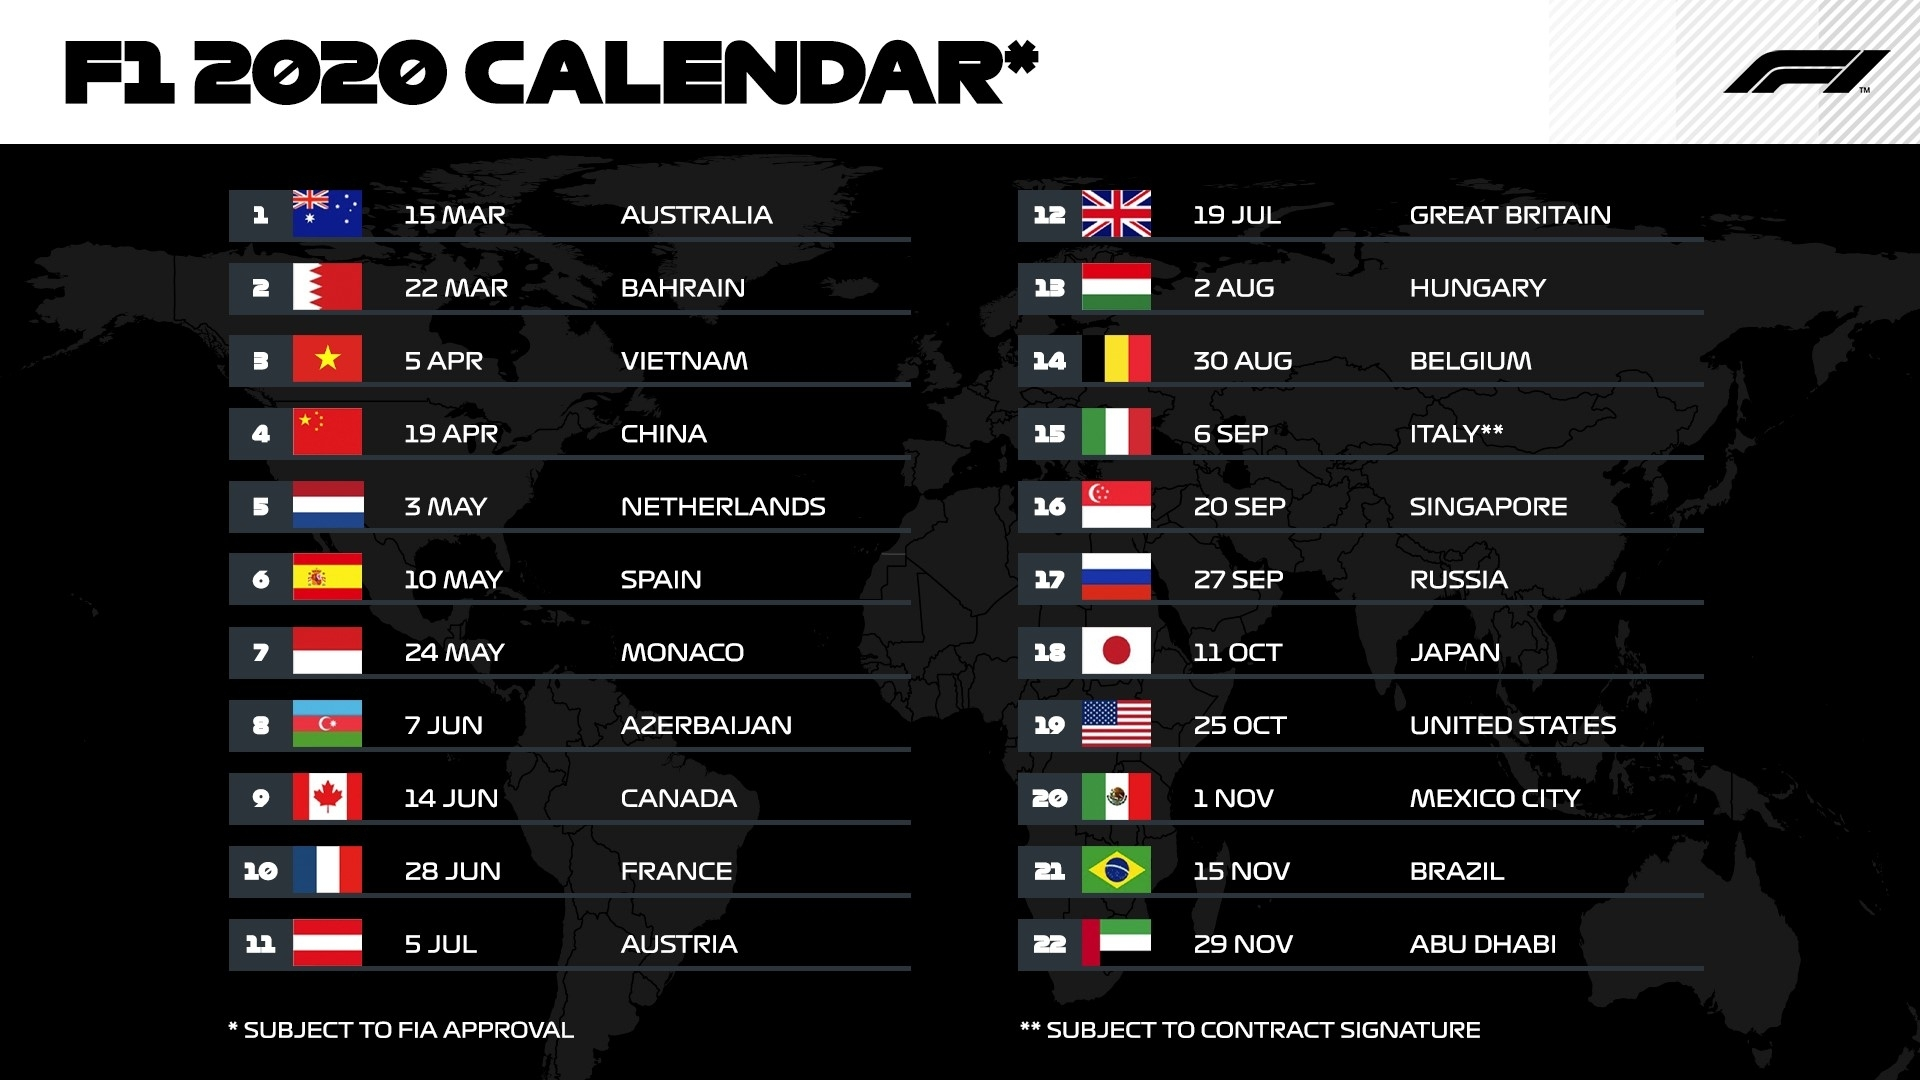 F1 Calendar 2020 - Enjoy A Record-Breaking 22 Races In The